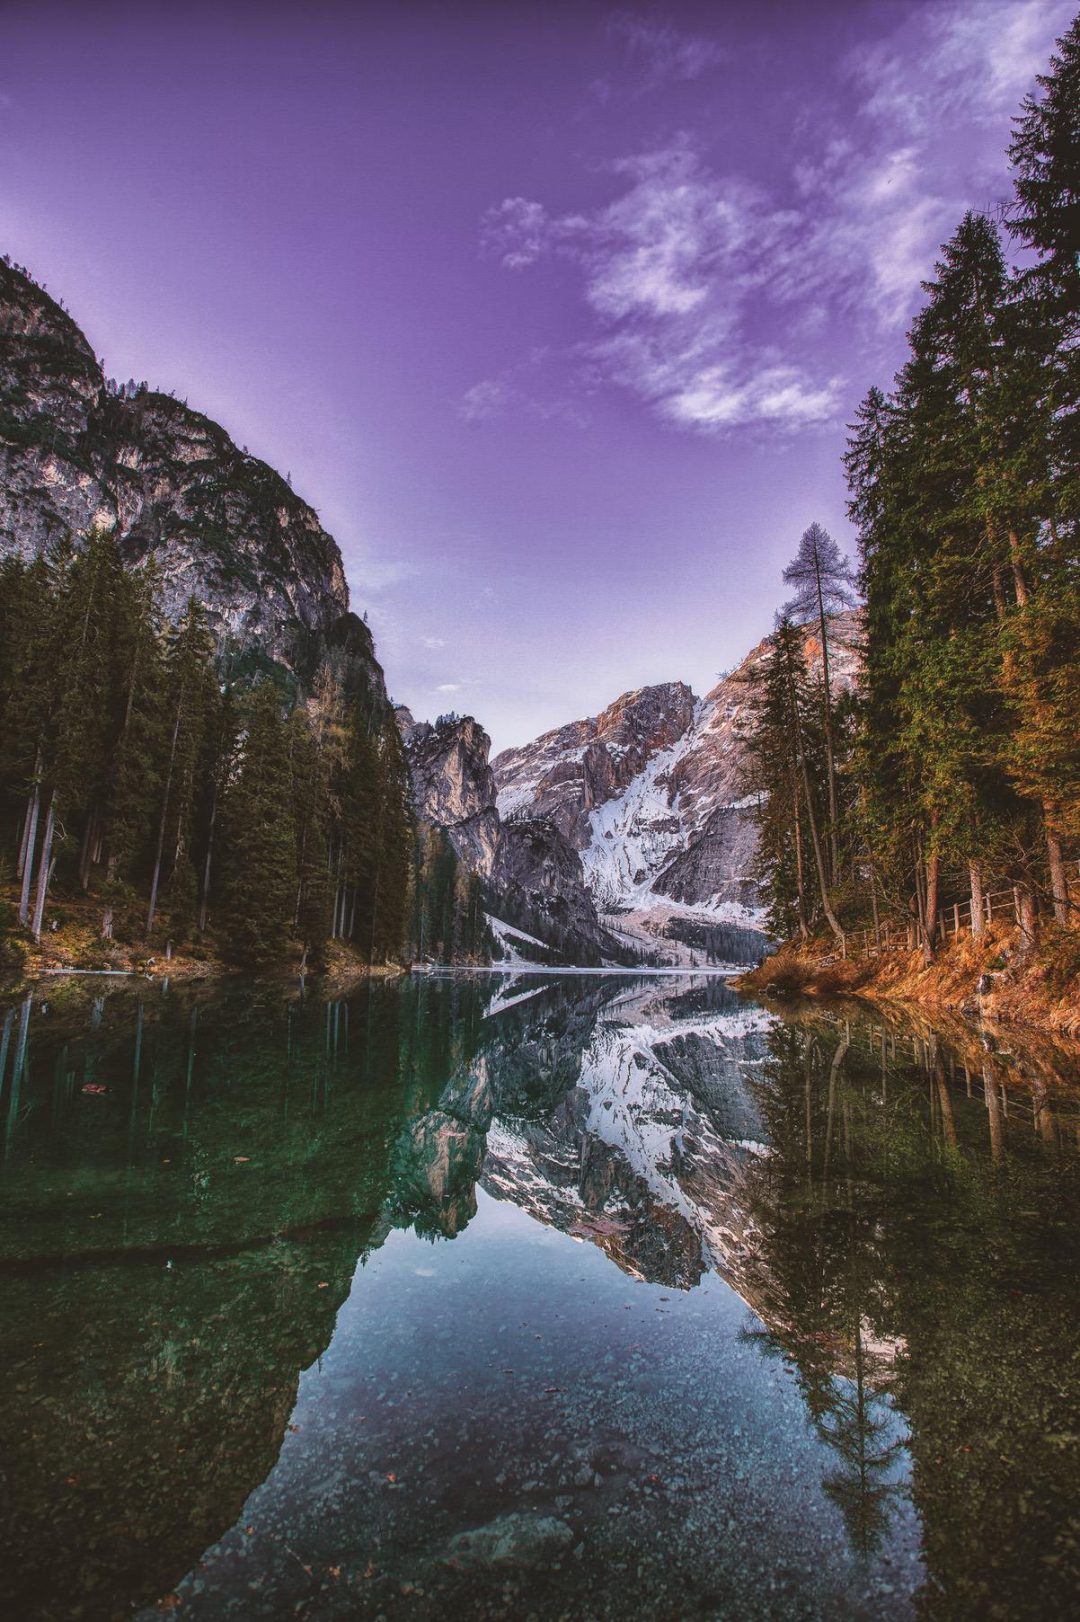 Beautiful nature wallpapers for iPhone - lake wallpapers with mountains and forest